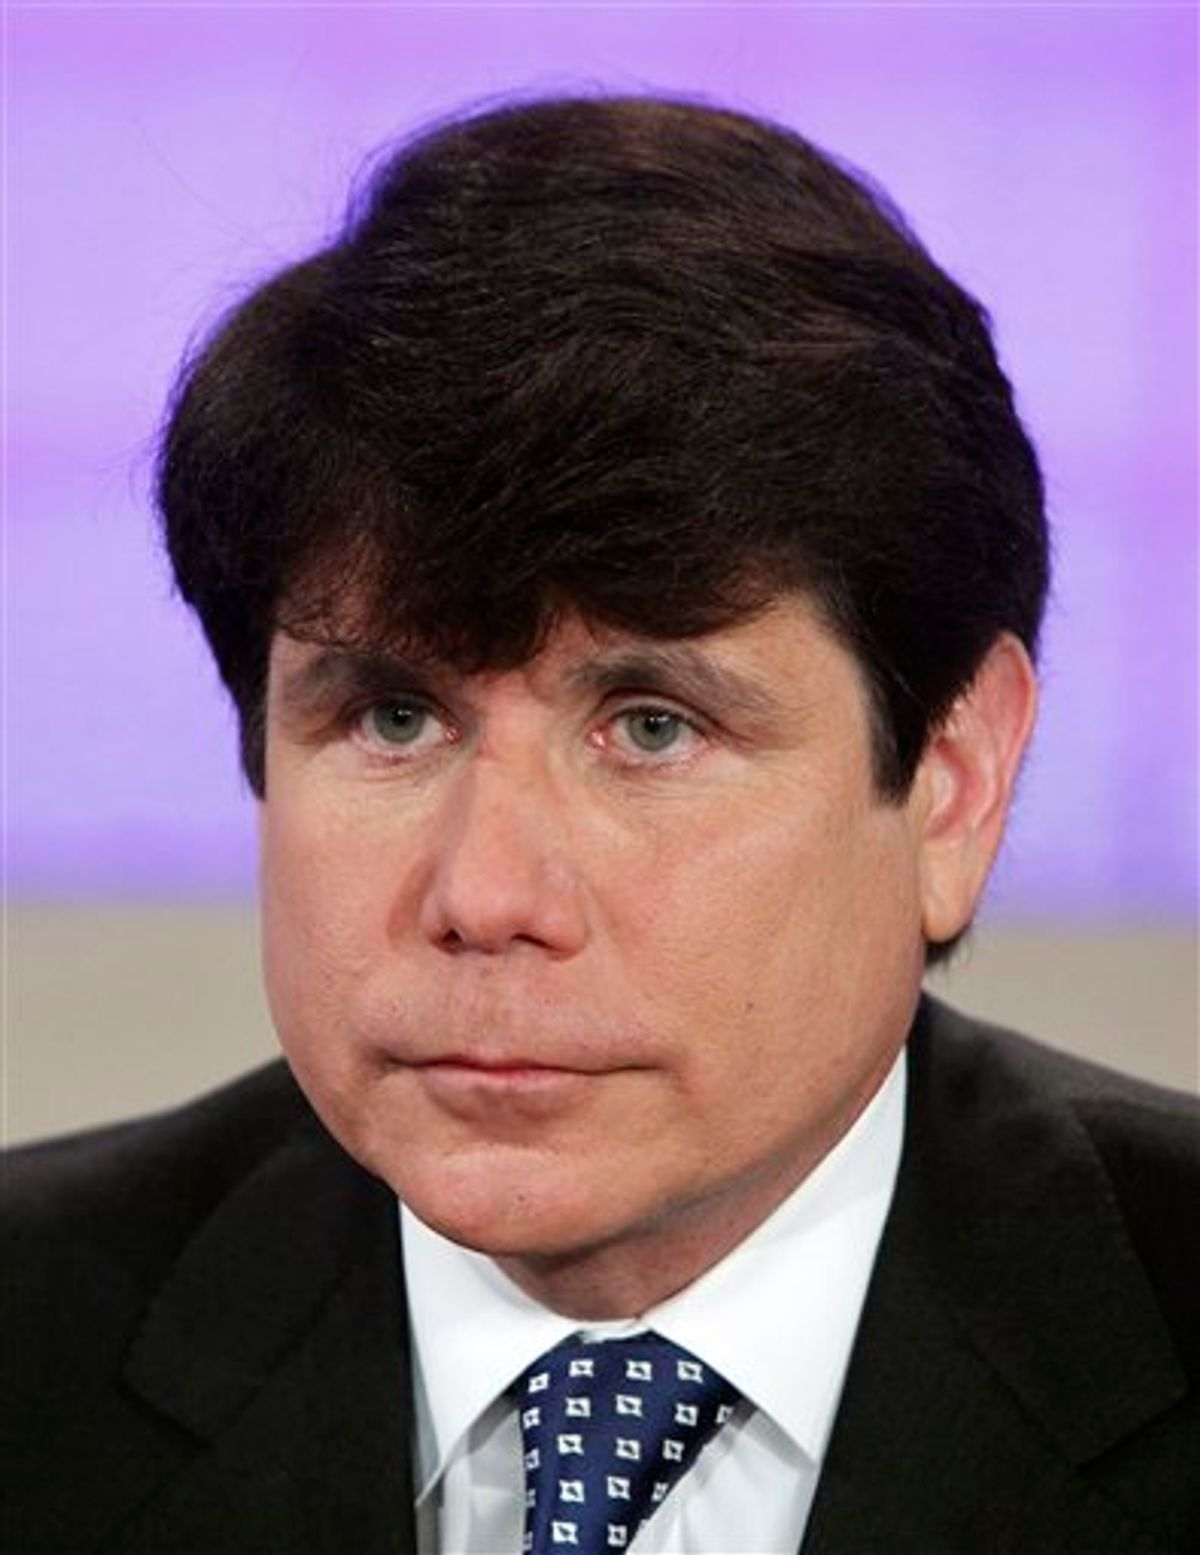 """FILE - This file photo provided by NBC shows former Illinois governor Rod Blagojevich on NBC's """"Today"""" show, in New York, on Friday, Aug. 20, 2010. Blagojevich has asked a judge to cancel his spring retrial and immediately sentence him instead on the sole conviction from his first trial. The request comes in a motion filed in U.S. District Court in Chicago early Wednesday March 9, 2011. (AP Photo/NBC, Peter Kramer, File) NO SALES (AP)"""